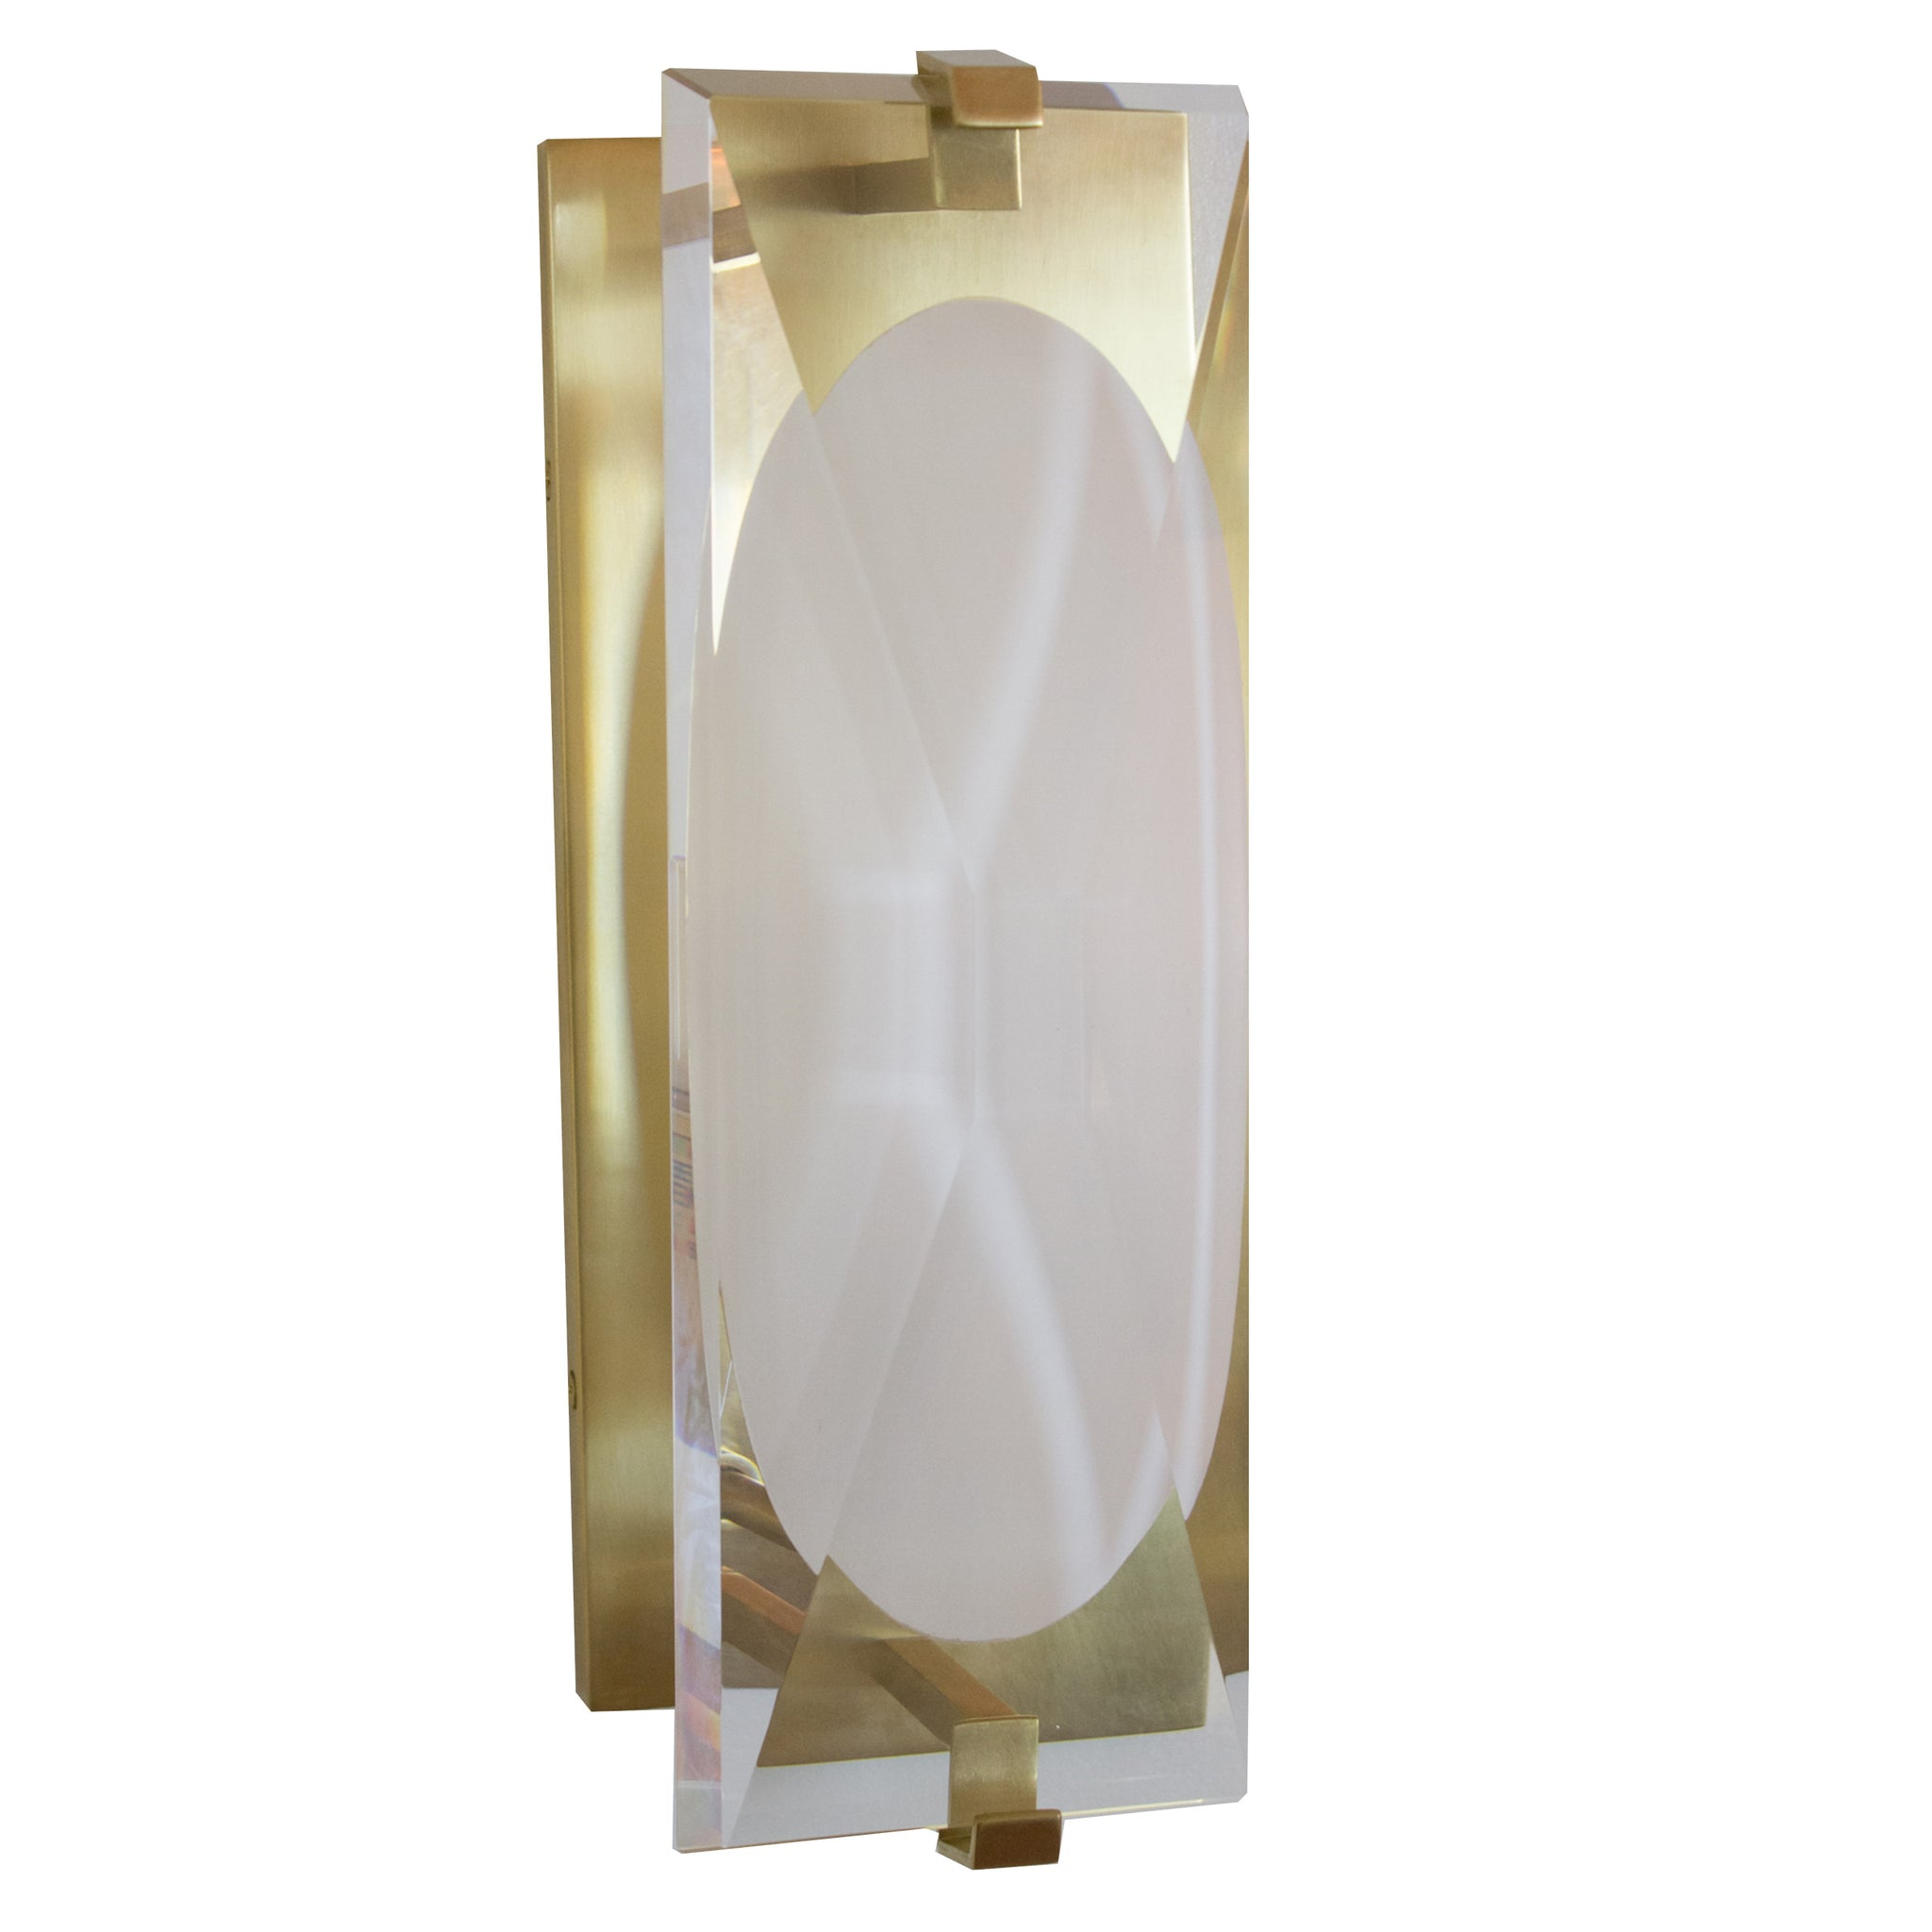 Castle Peak Small Bath Sconce in Soft Brass